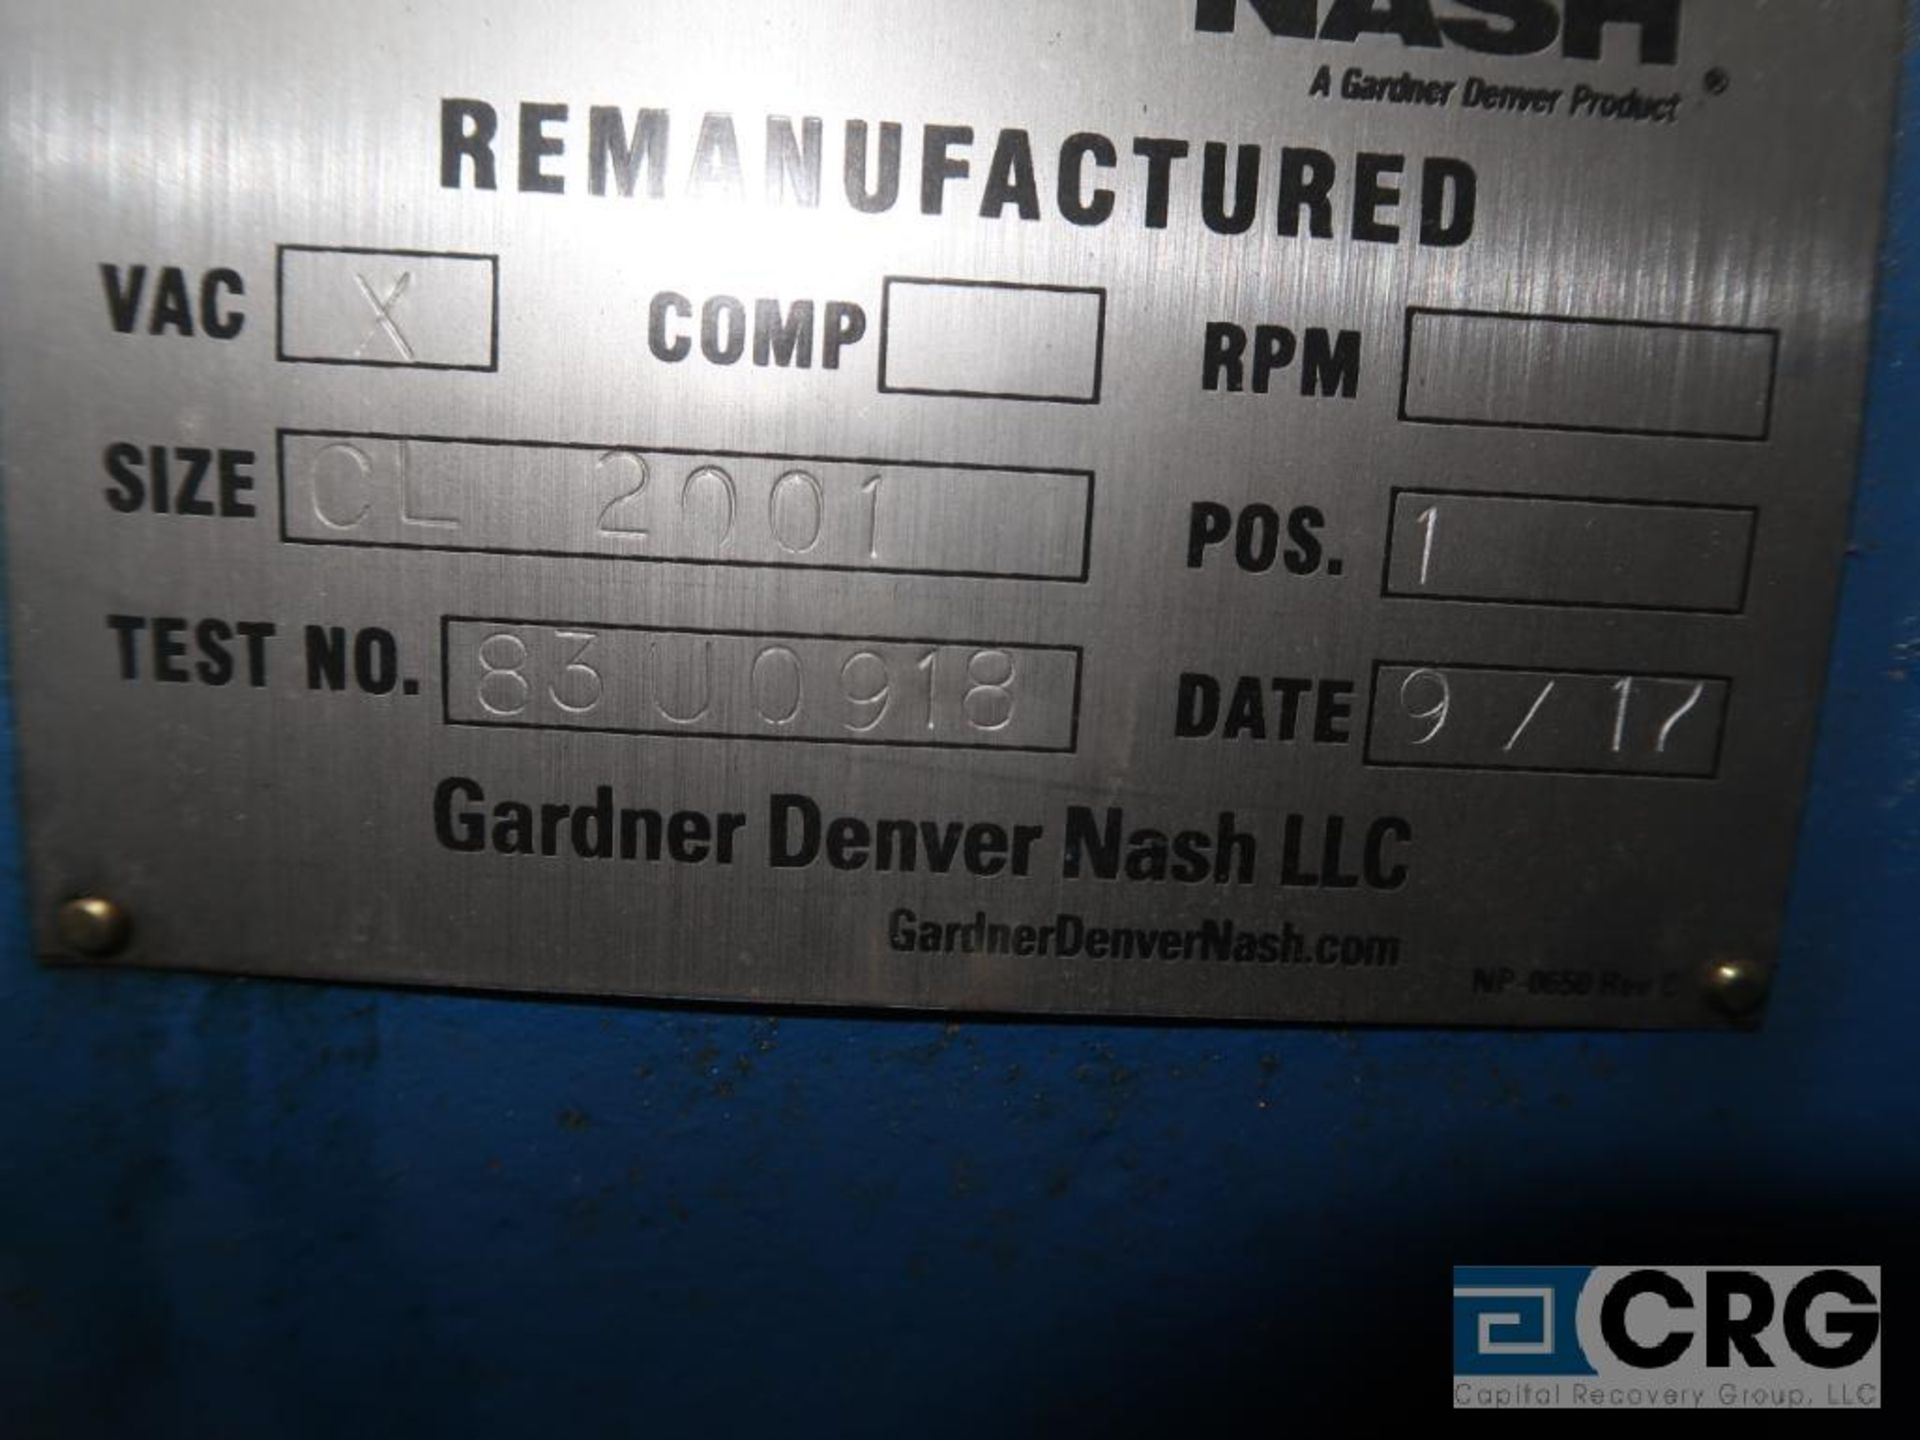 Nash CL2001 vacuum pump, remanufactured year 2017 (Off Site Warehouse) - Image 2 of 2